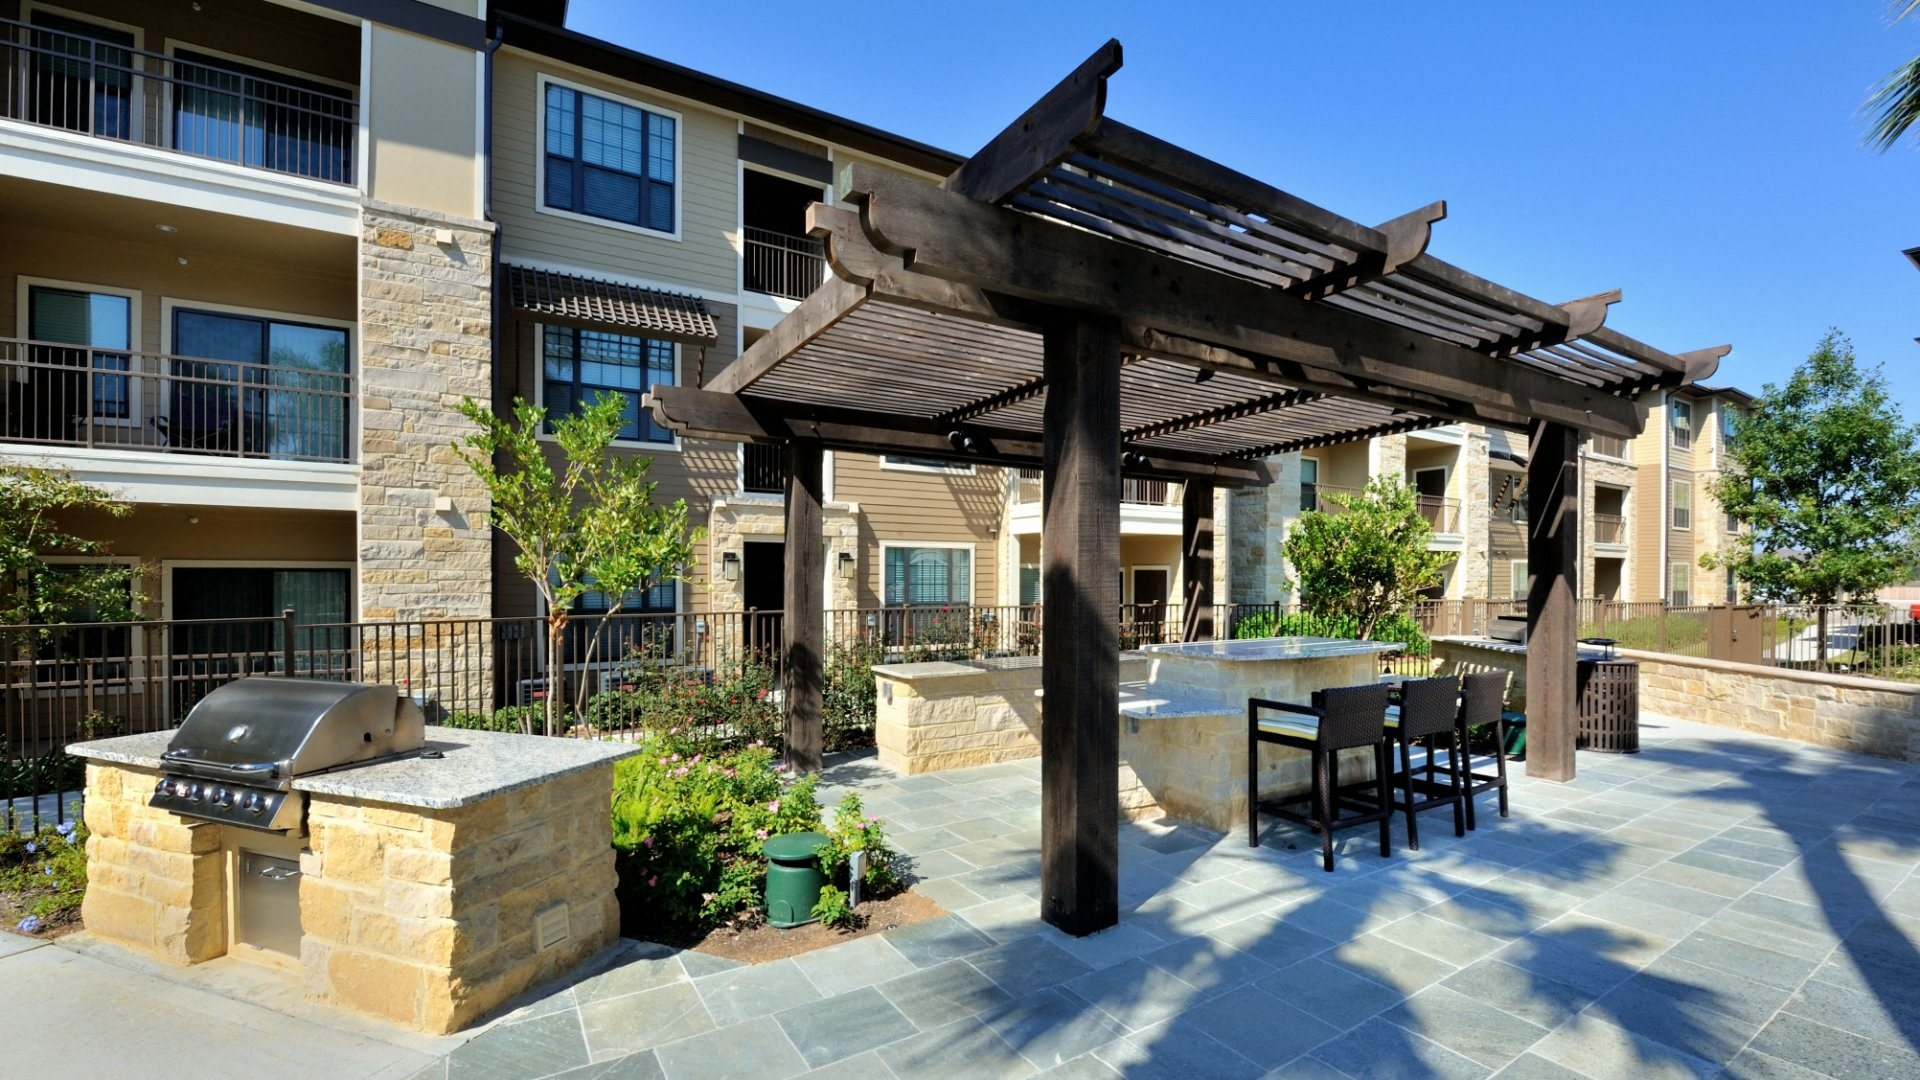 Grilling Station at Broadstone Park West Apartments, Houston